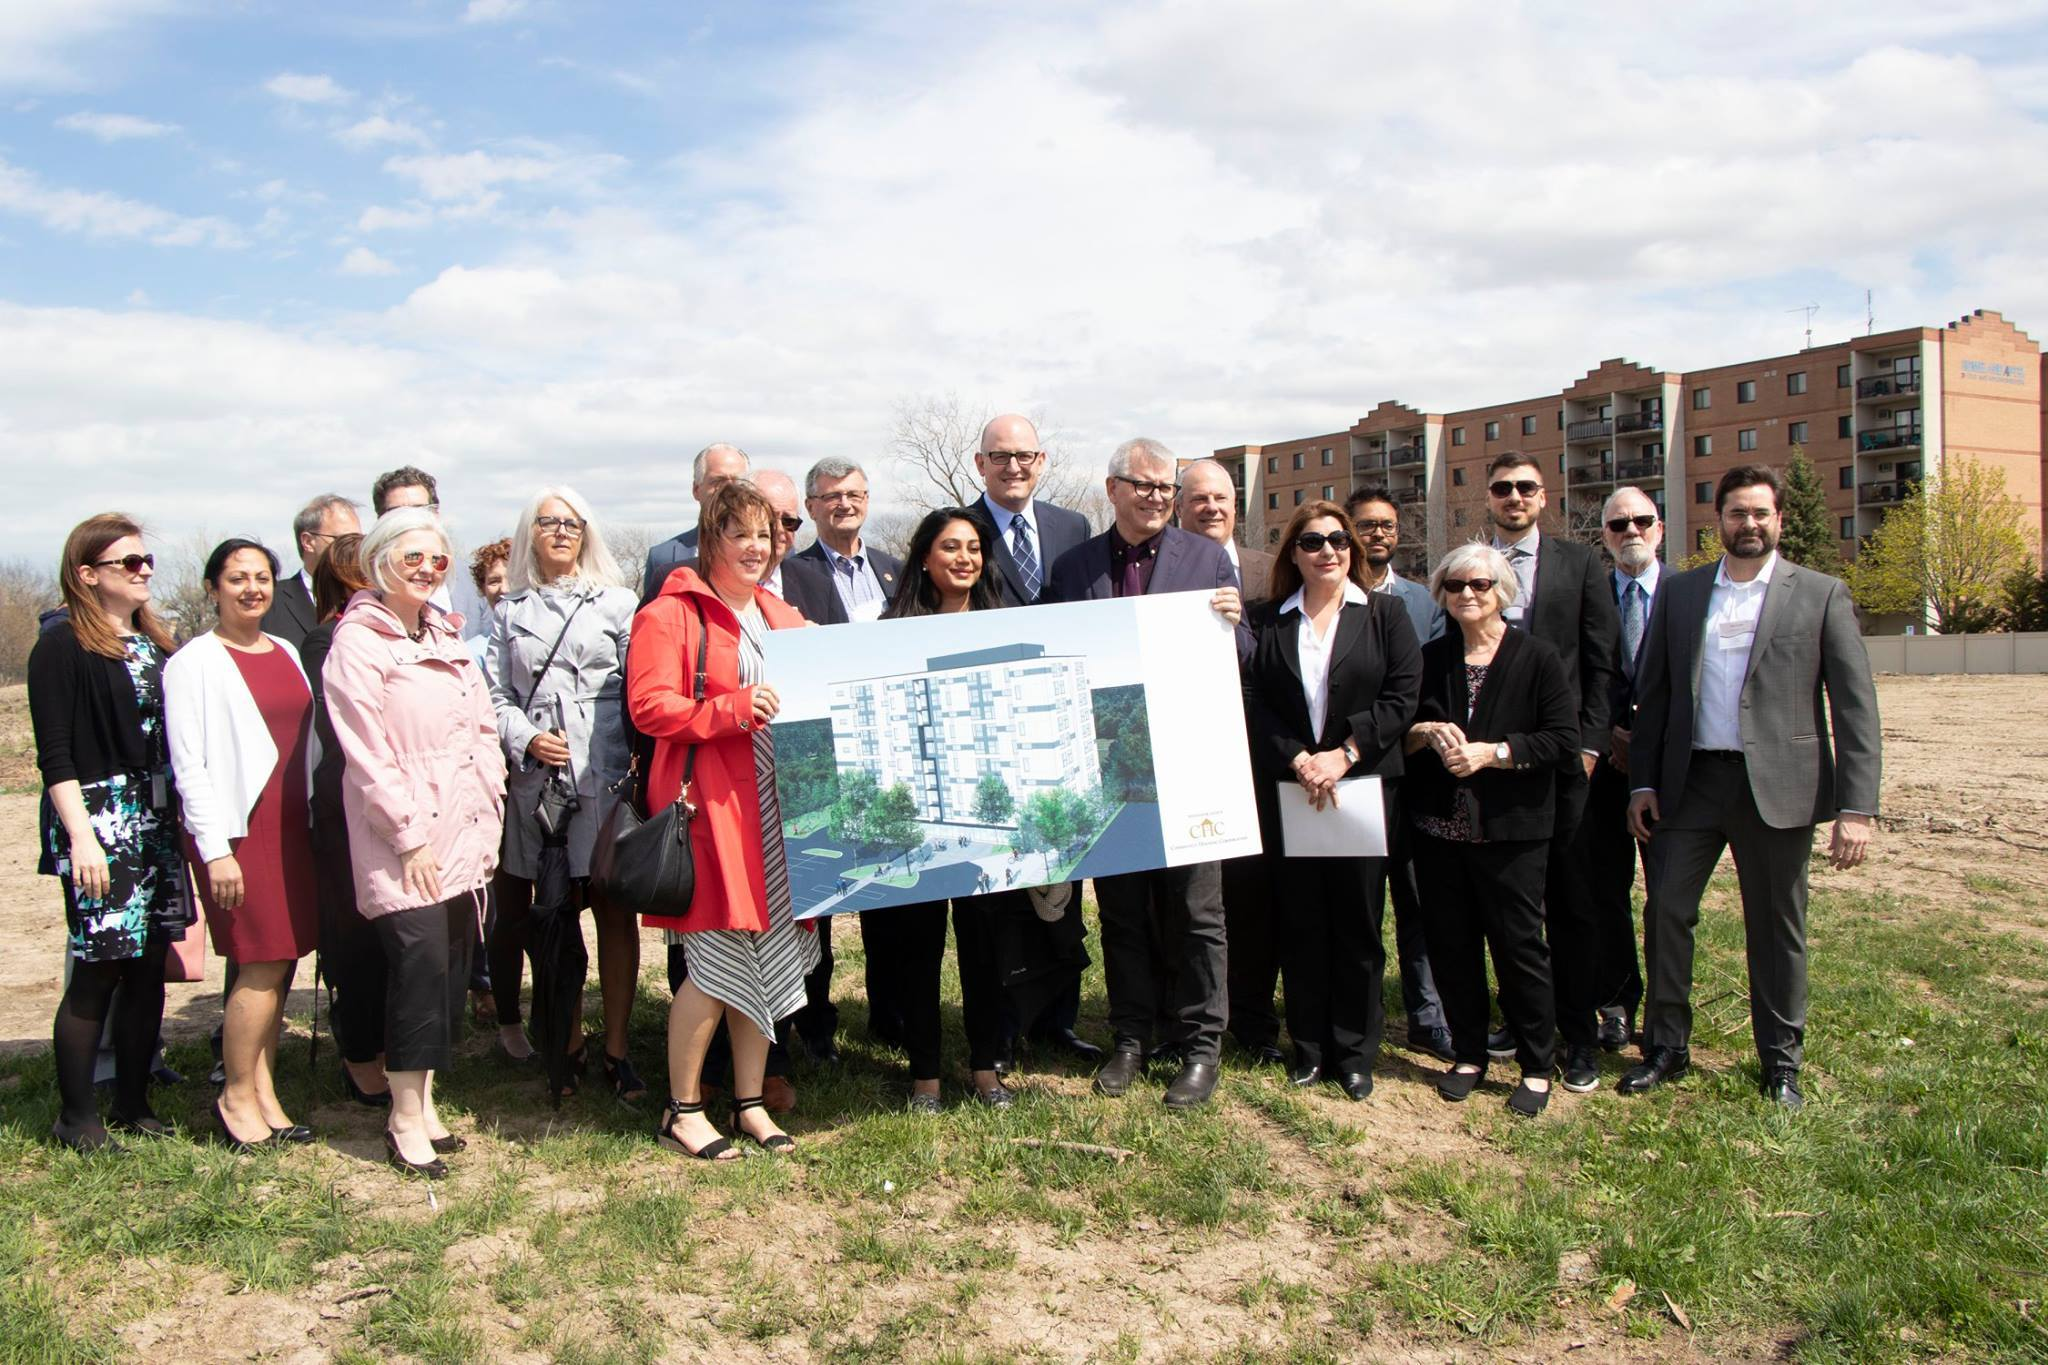 Group photo with building plans